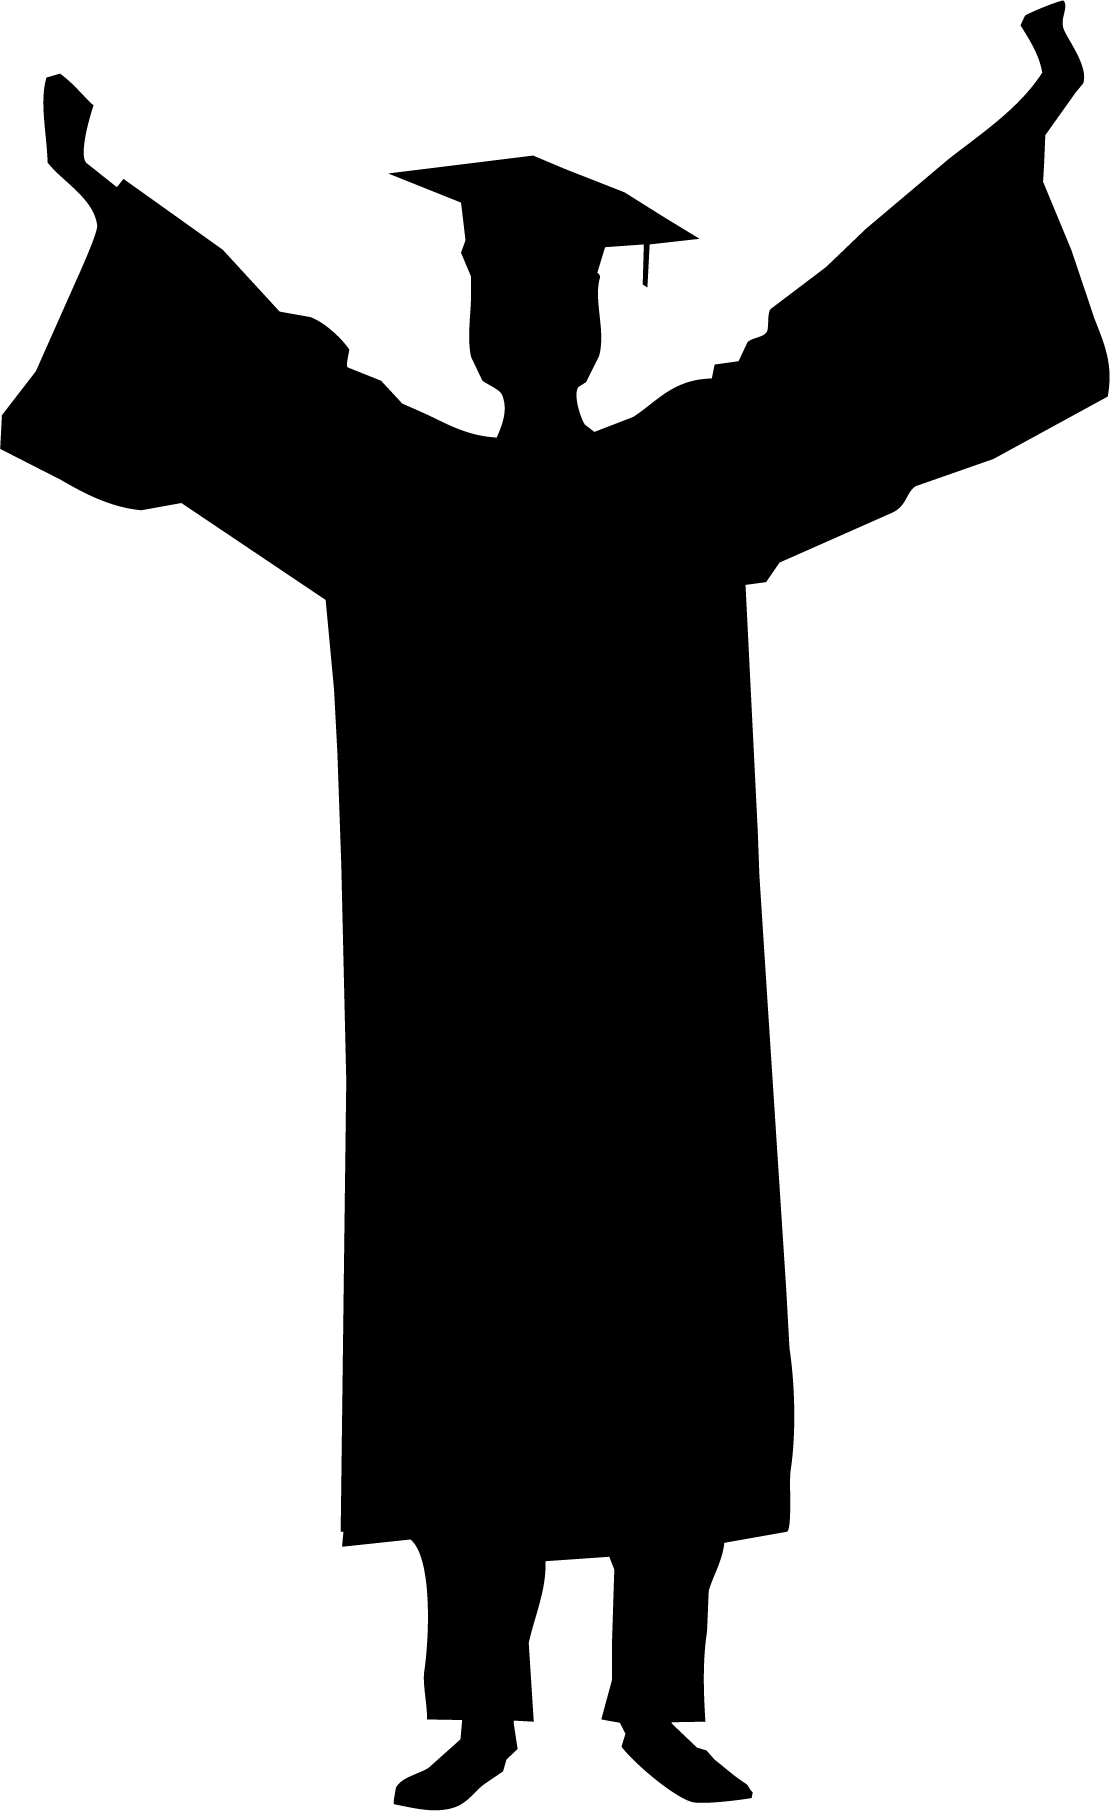 Graduate drawing man. Graduation ceremony silhouette student